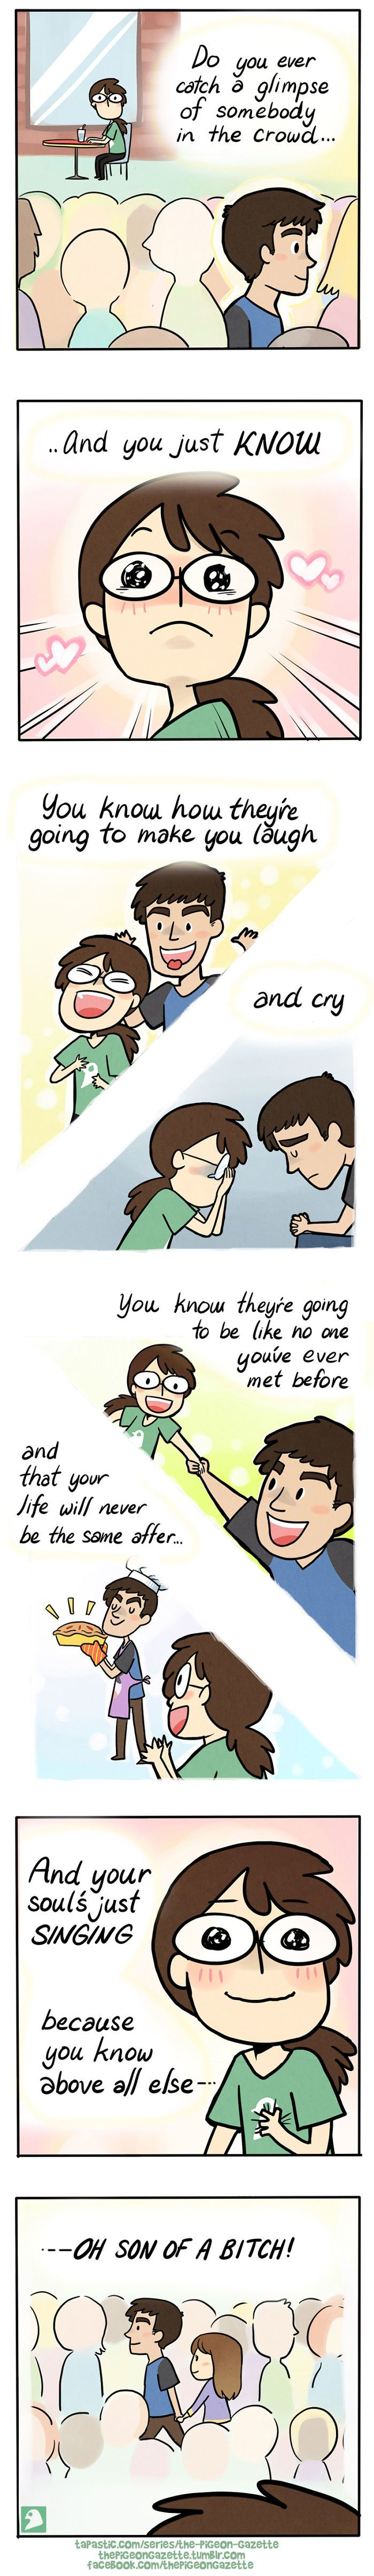 35+ Socially Awkward Comics By Pigeon Gazette That Every Nerdy Person Will Relate To - http://viralbubble.com/35-socially-awkward-comics-by-pigeon-gazette-that-every-nerdy-person-will-relate-to/